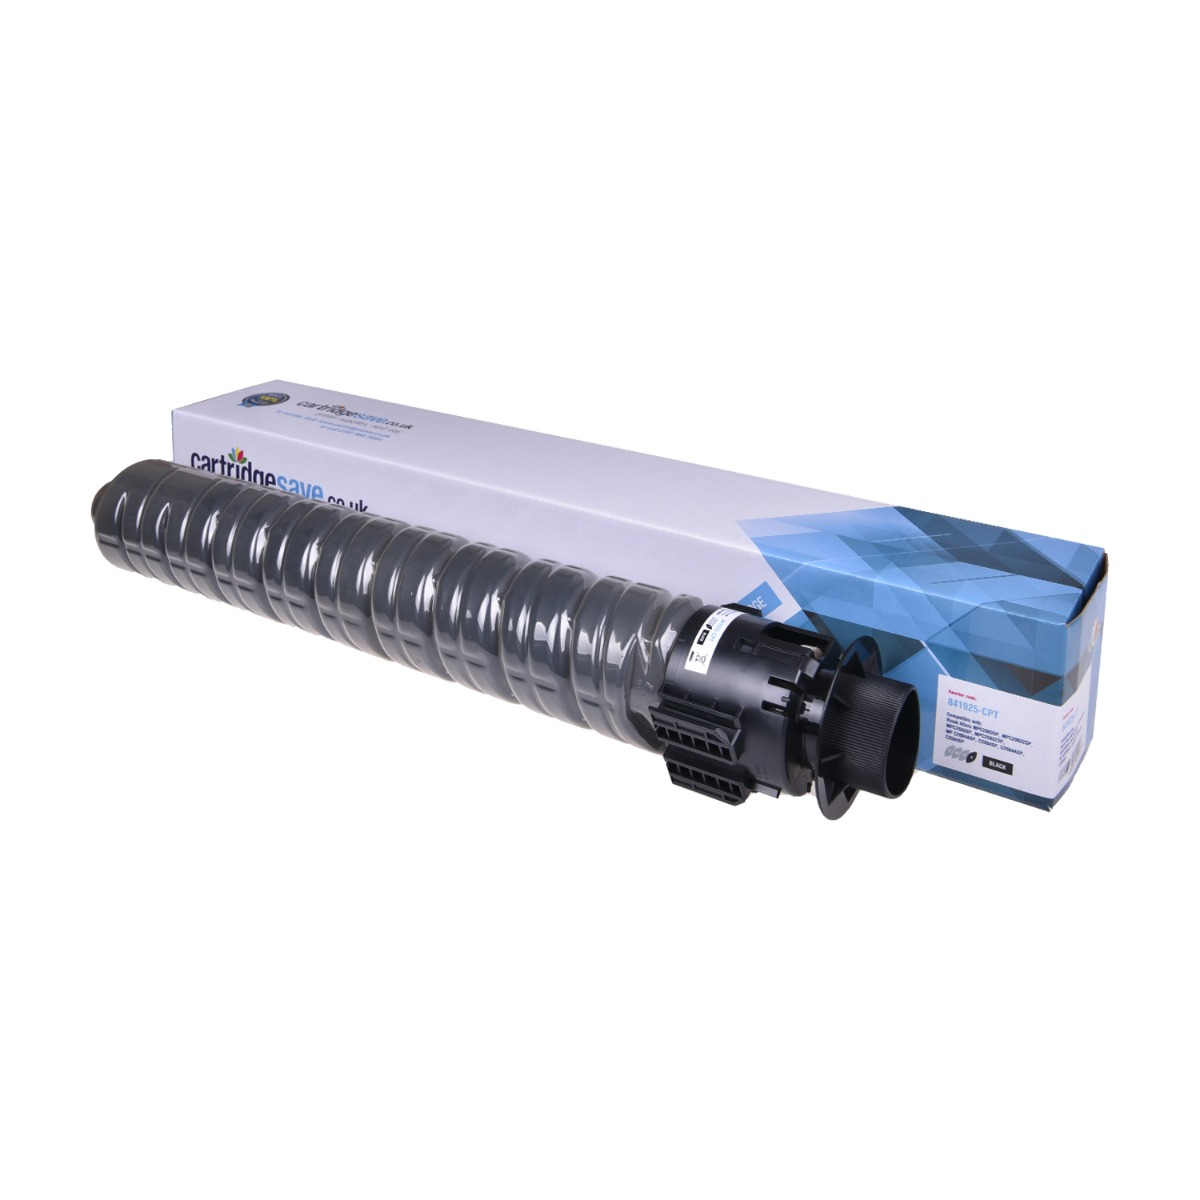 Compatible Ricoh Black 841925 Toner Cartridge - (841925)